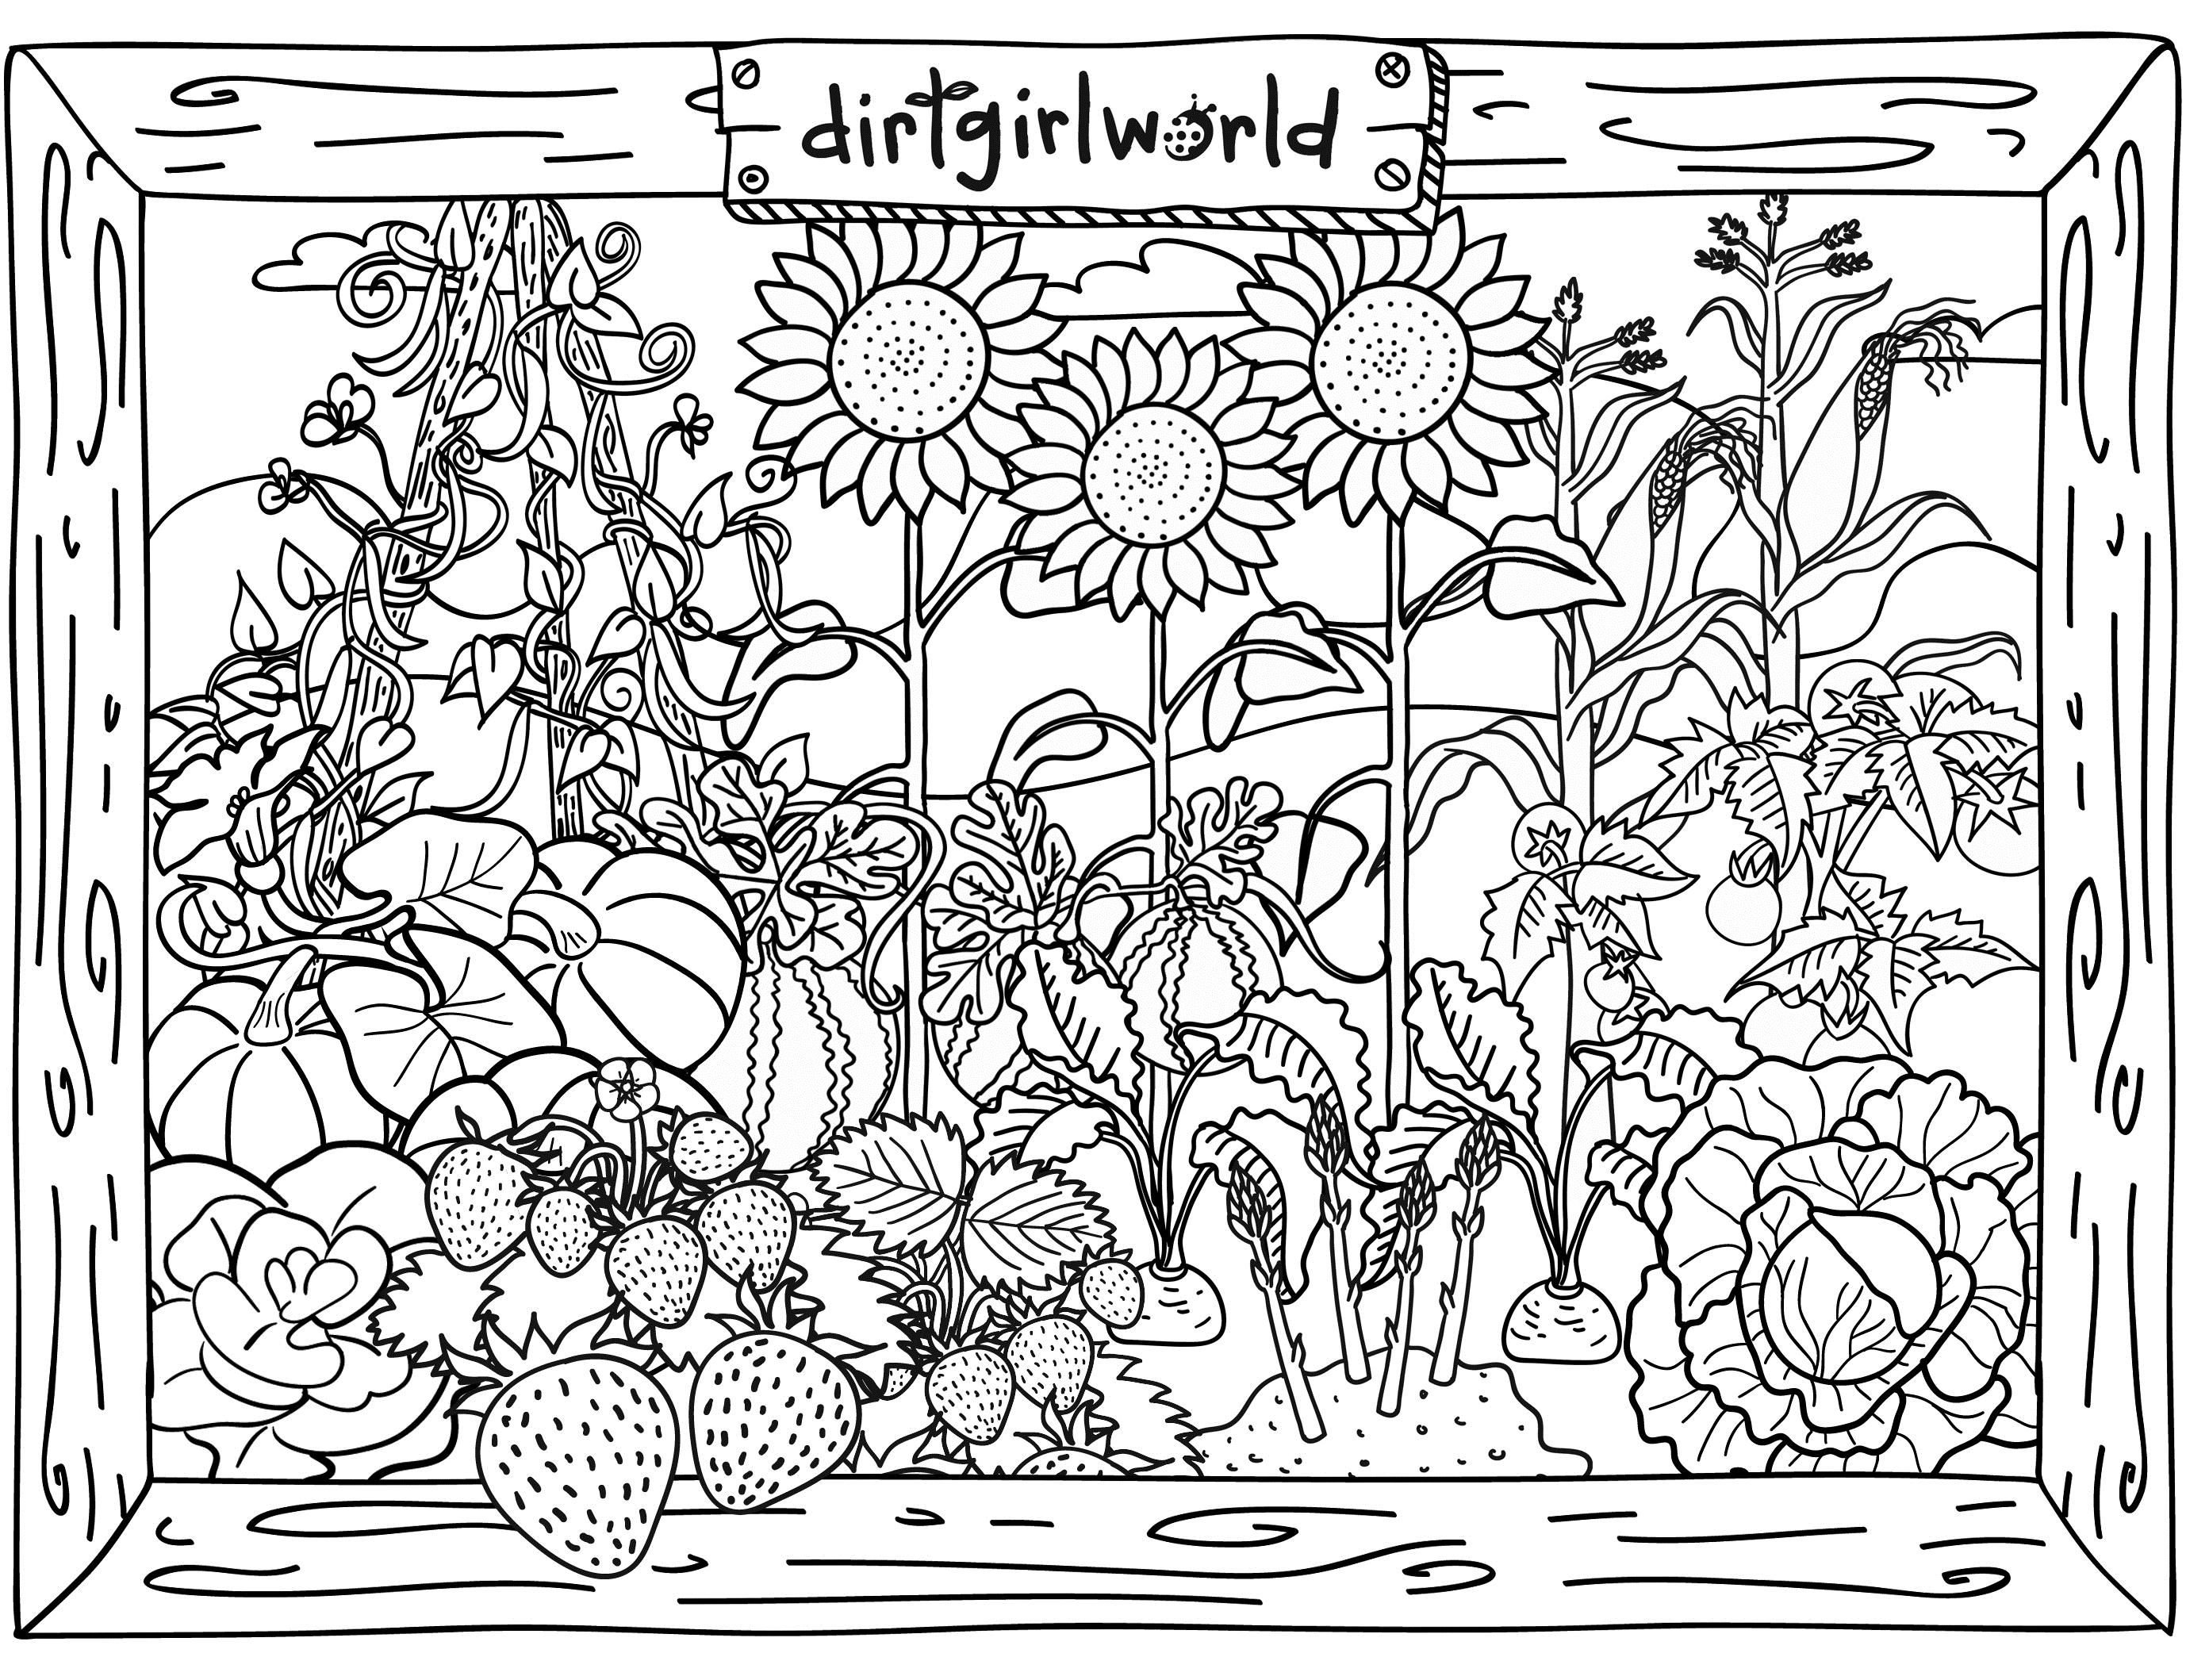 dirt girl world garden colouring page